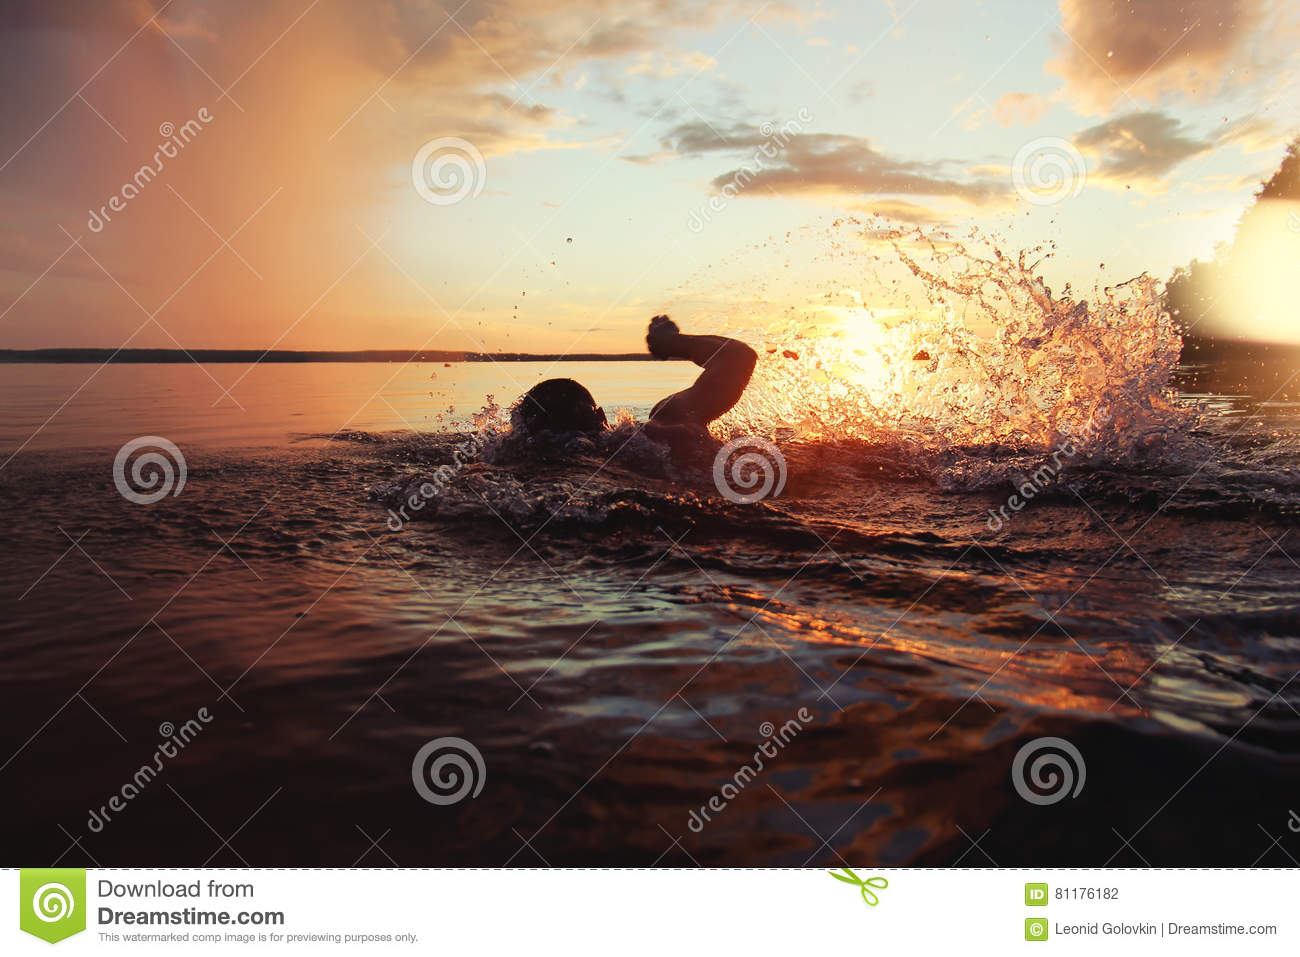 Athletic man is trained to swim in a lake at sunset. It flies a lot of water splashing